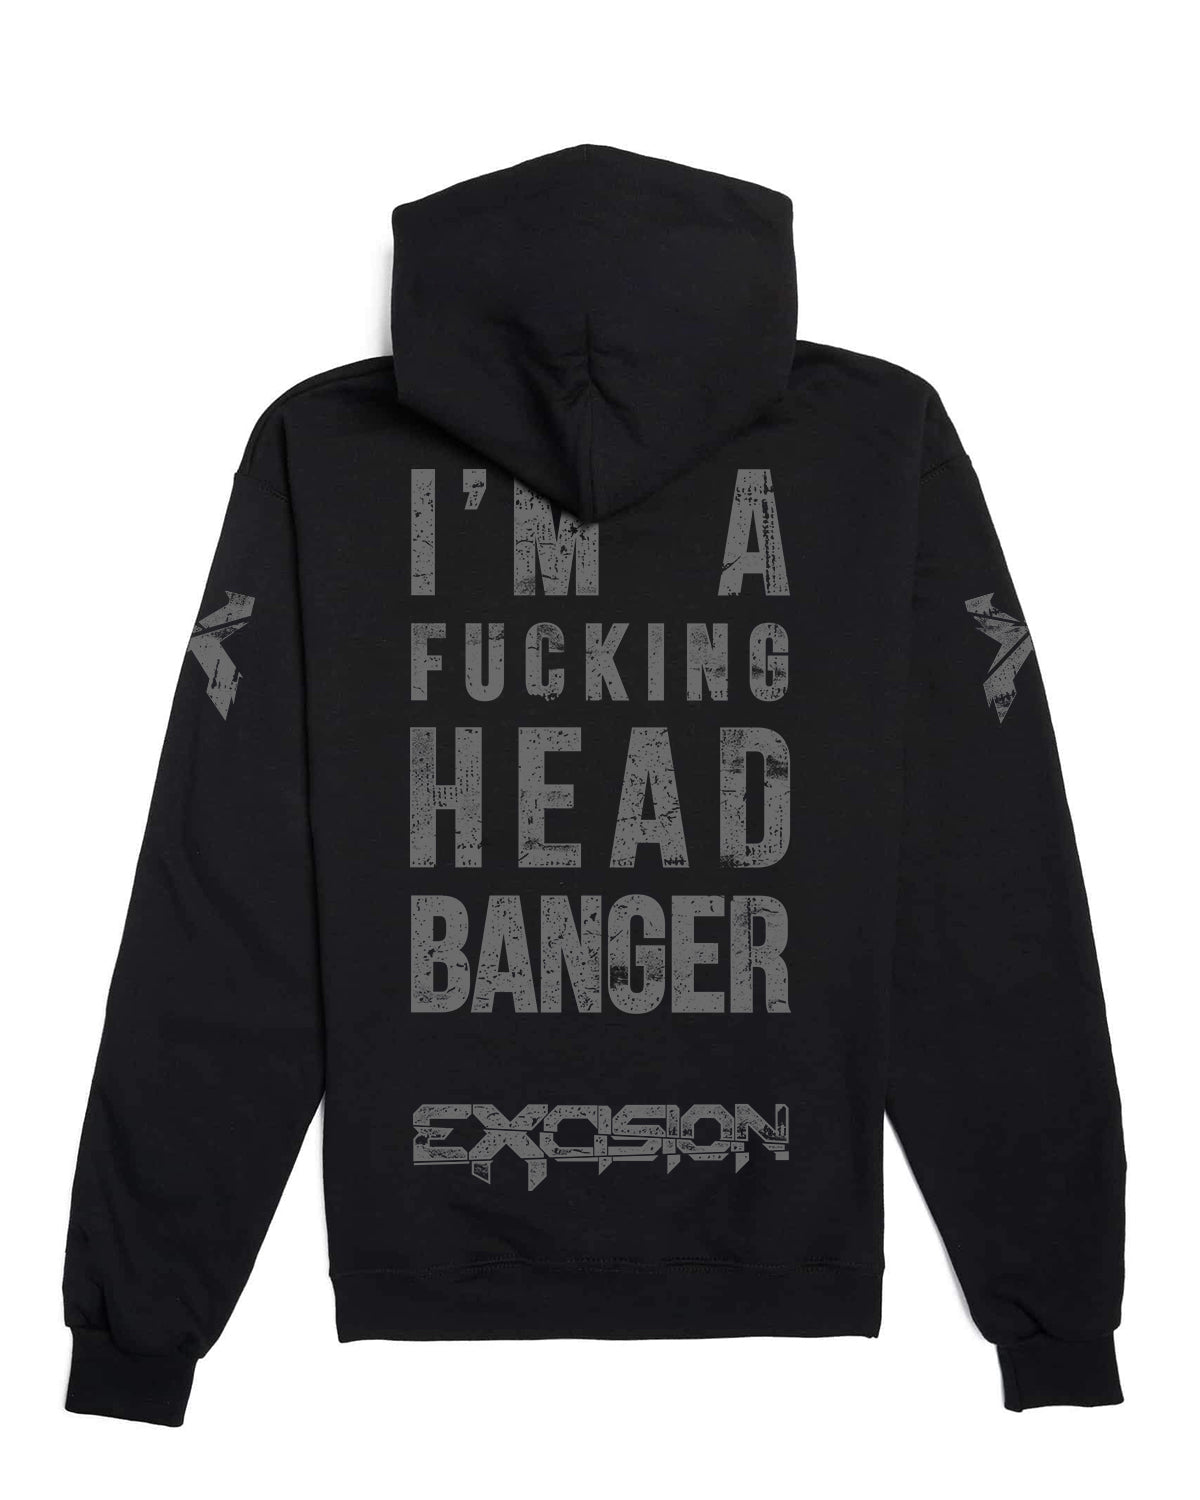 Apex Tour 2019 Limited Edition Reflective Headbanger Hoodie (PreOrder!: ships 01/12)